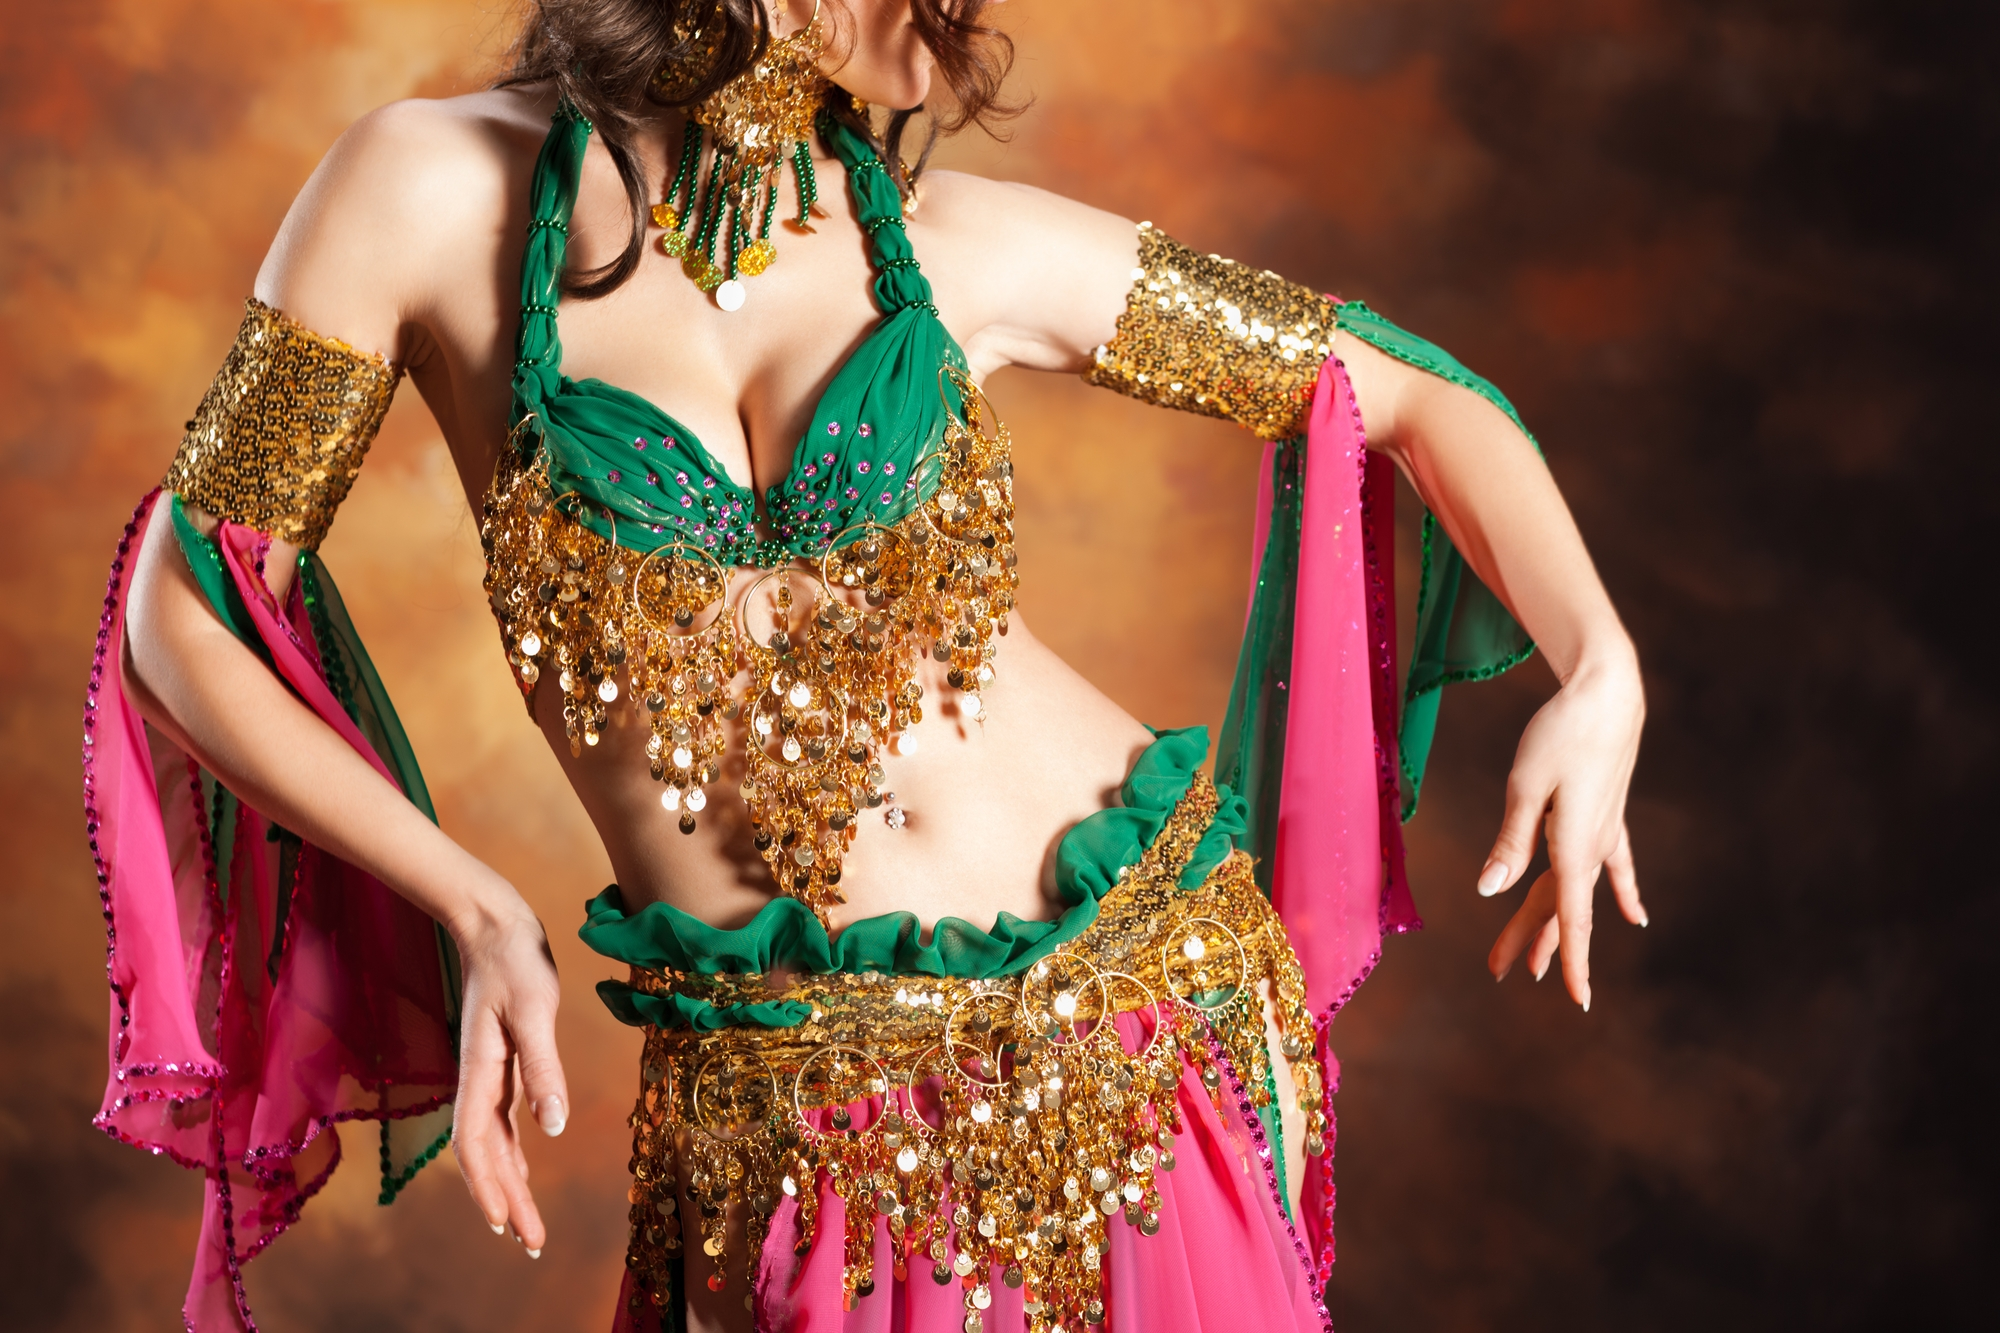 World Belly Dance Day 2019